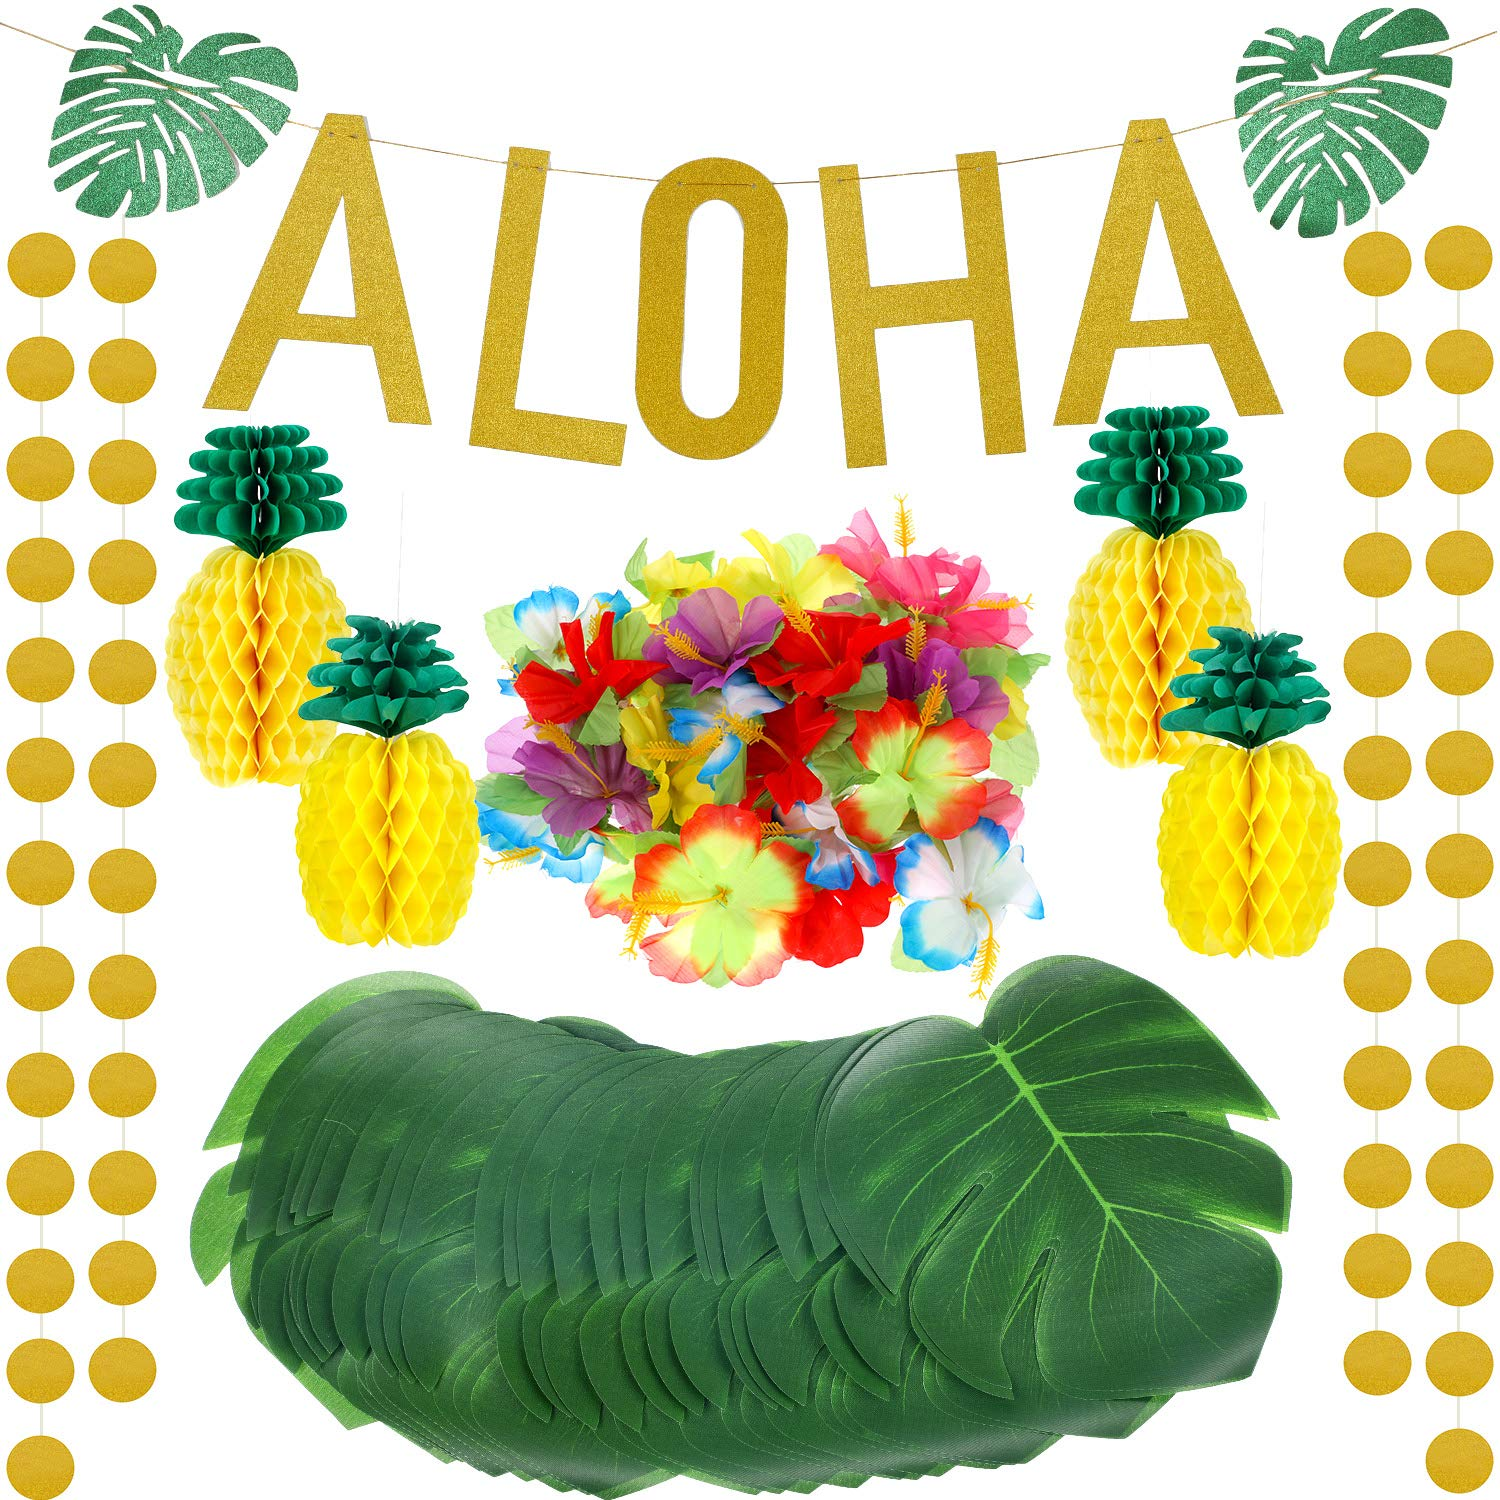 143 Pieces Hawaiian Tropical Luau Theme Party Decorations Set, Include Tissue Paper Pineapples, Tropical Palm Simulation Leaves, Artificial Hibiscus Luau Flowers, Gold Glittery Aloha Banner by Blulu